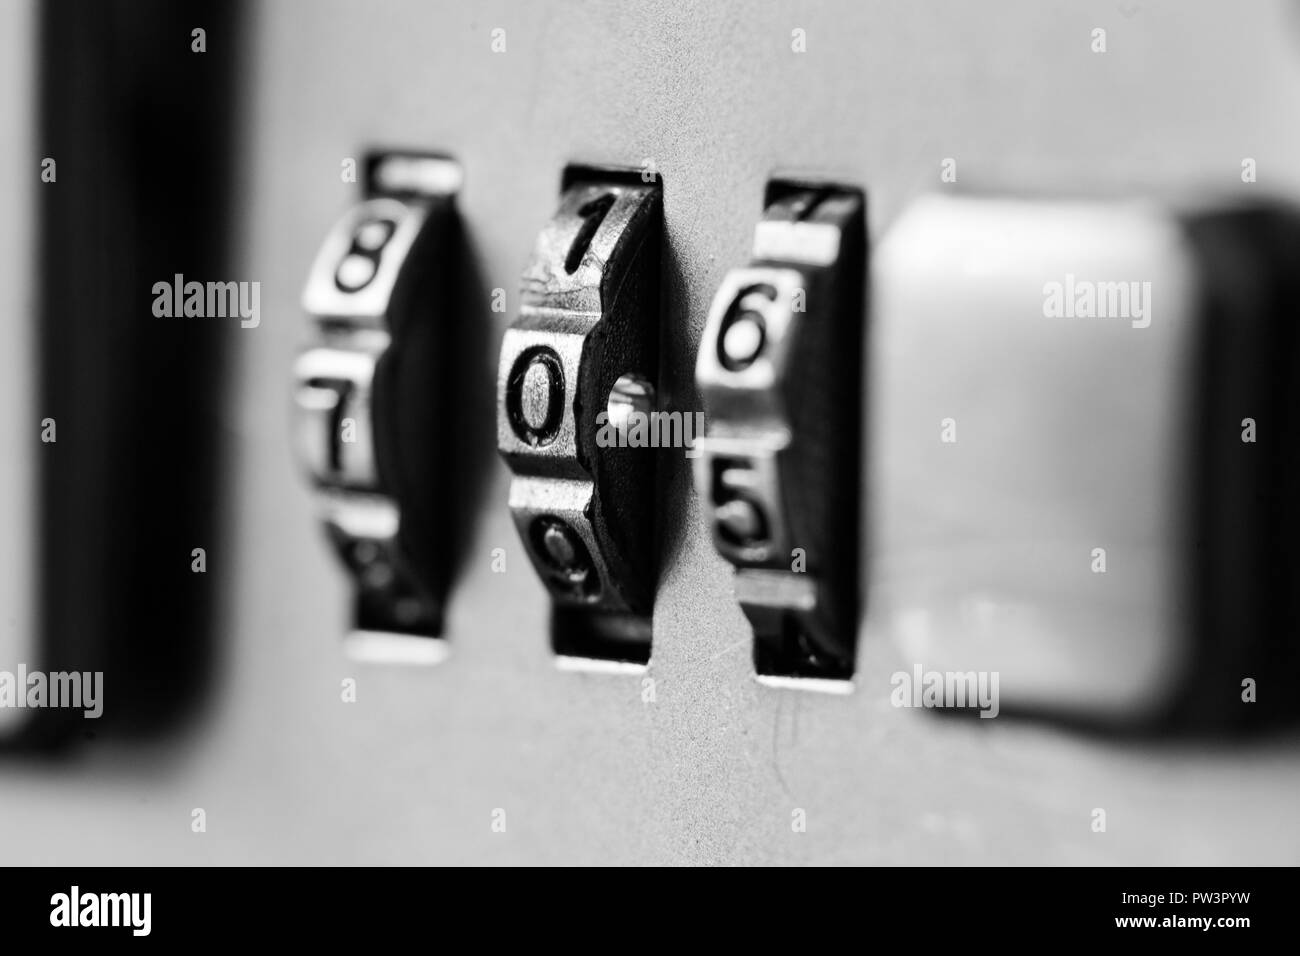 Combination padlock close up with chrome numbers. Mechanical combination lock, counter. Selective focus - Stock Image